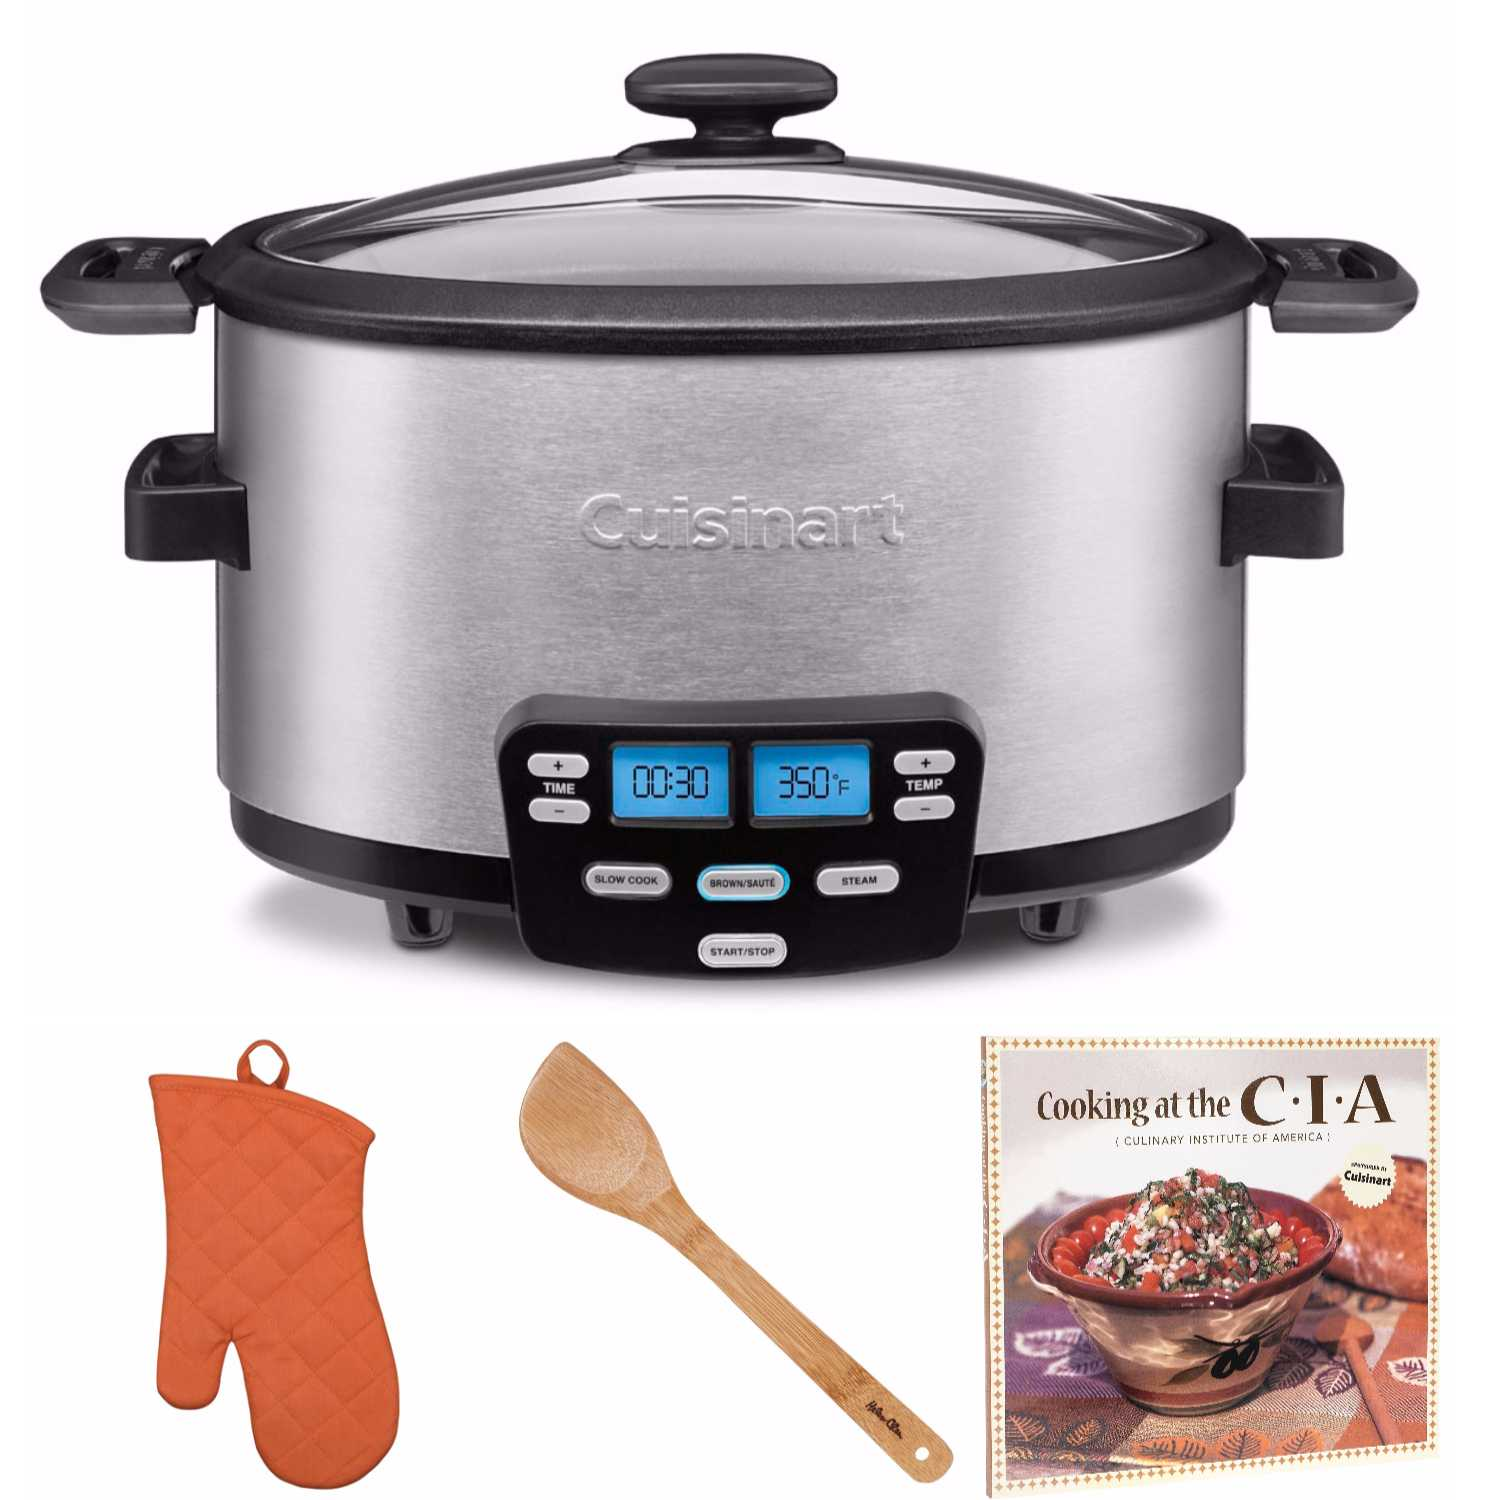 Cuisinart Cook Central 6-Quart Slow Cooker with Cookbook and Kitchen Tools